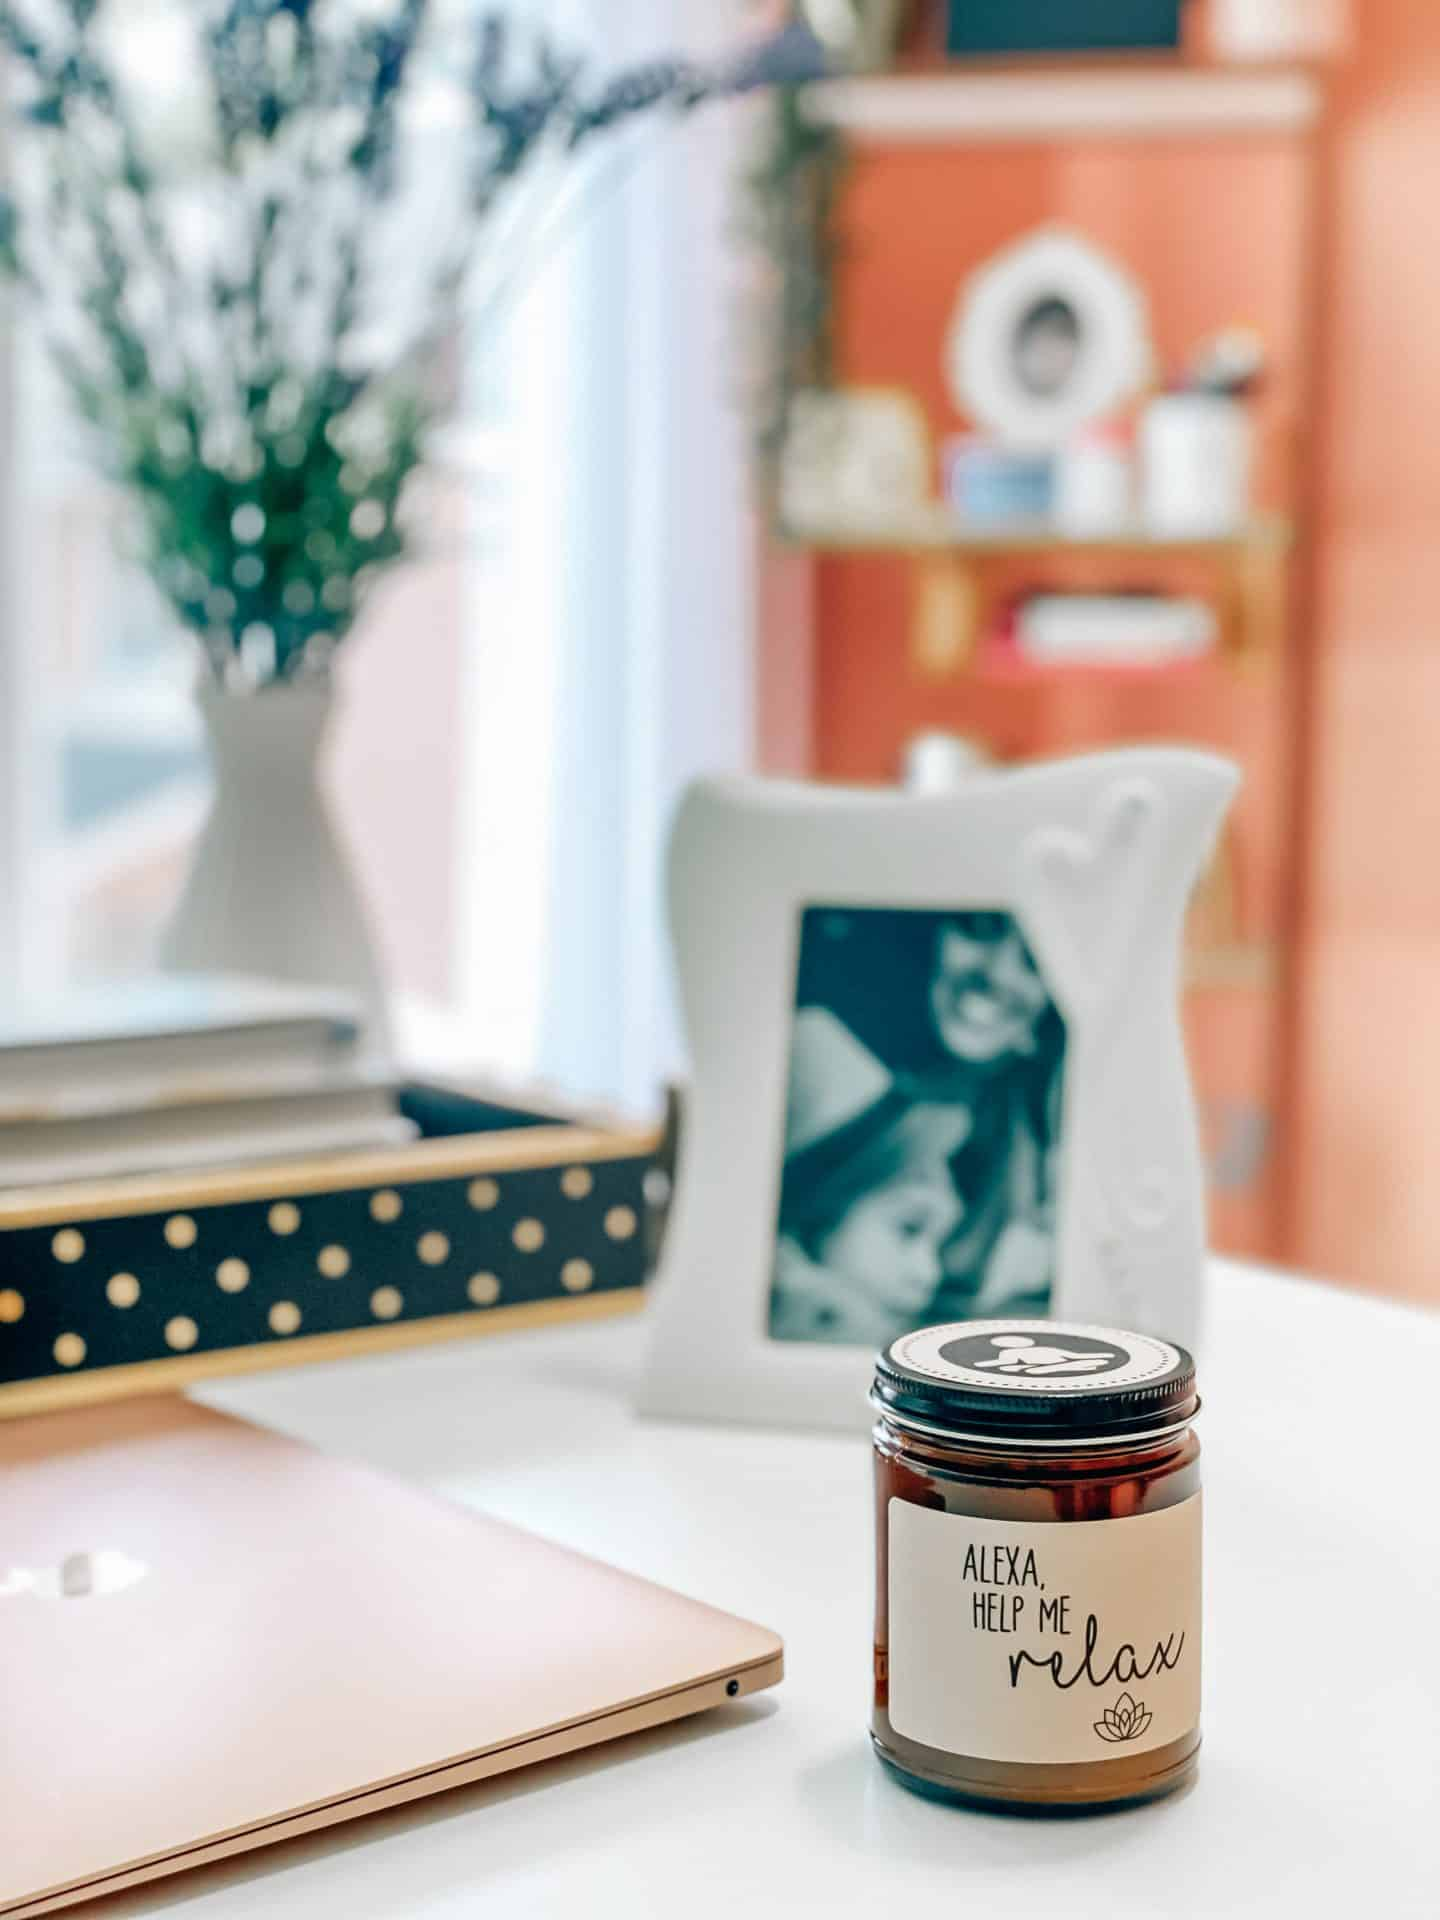 favorite_productive _product_finds_alexa_candle_home_office decor_photo_frame